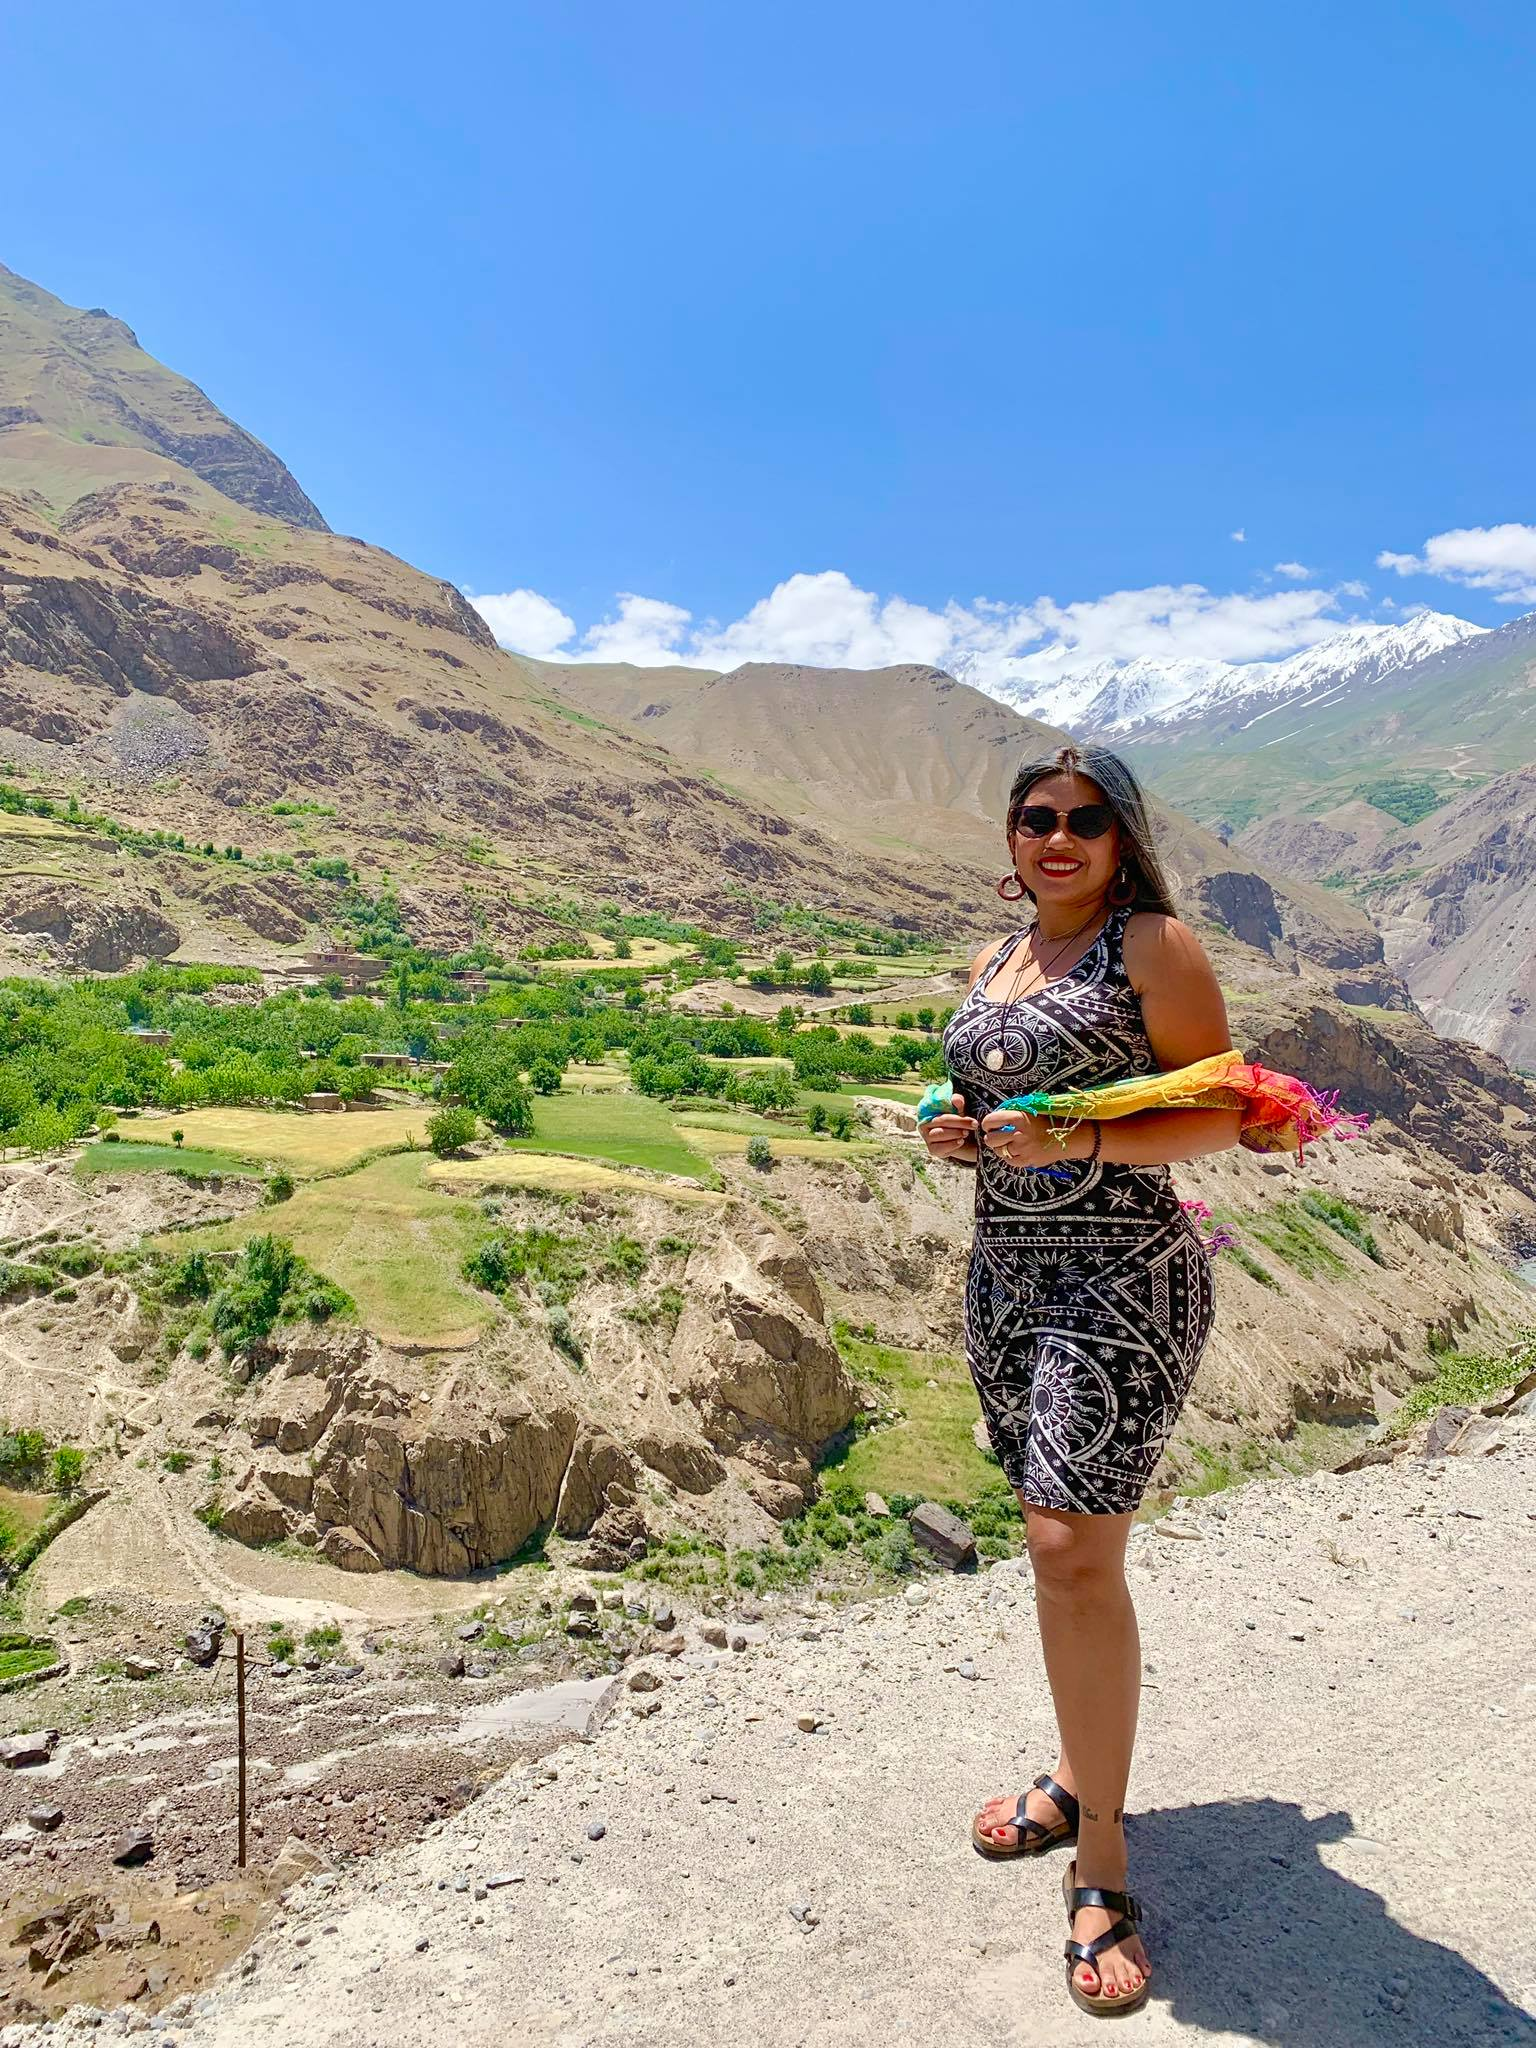 13 Things You Should Not Miss When You Travel the Pamir Highway in Tajikistan8